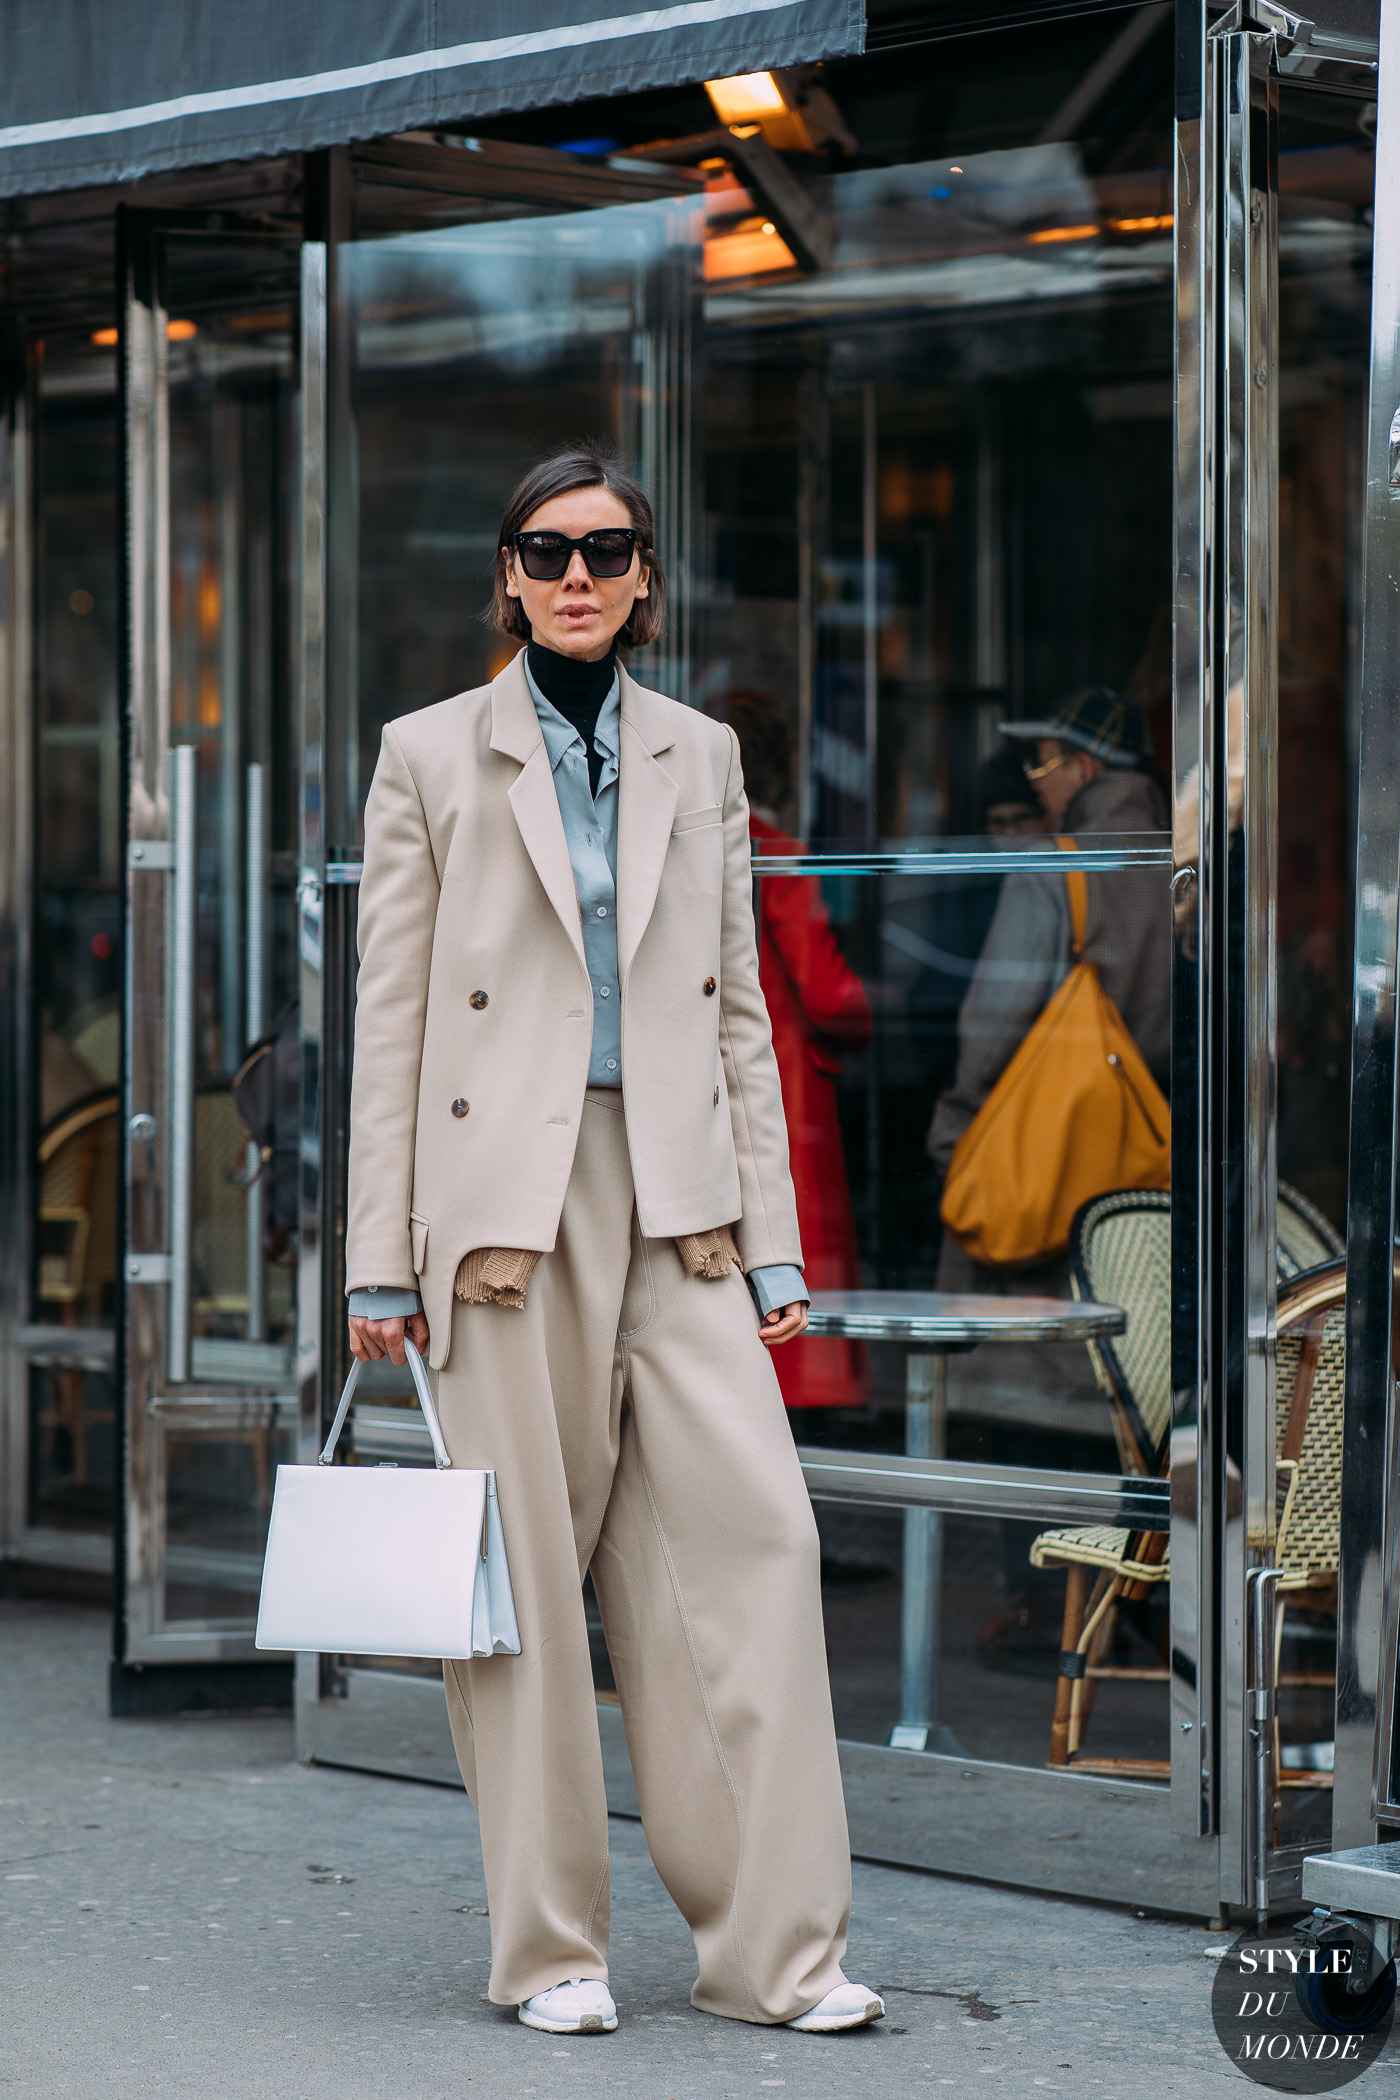 Julie Pelipas by STYLEDUMONDE Street Style Fashion Photography FW18 20180303_48A9690